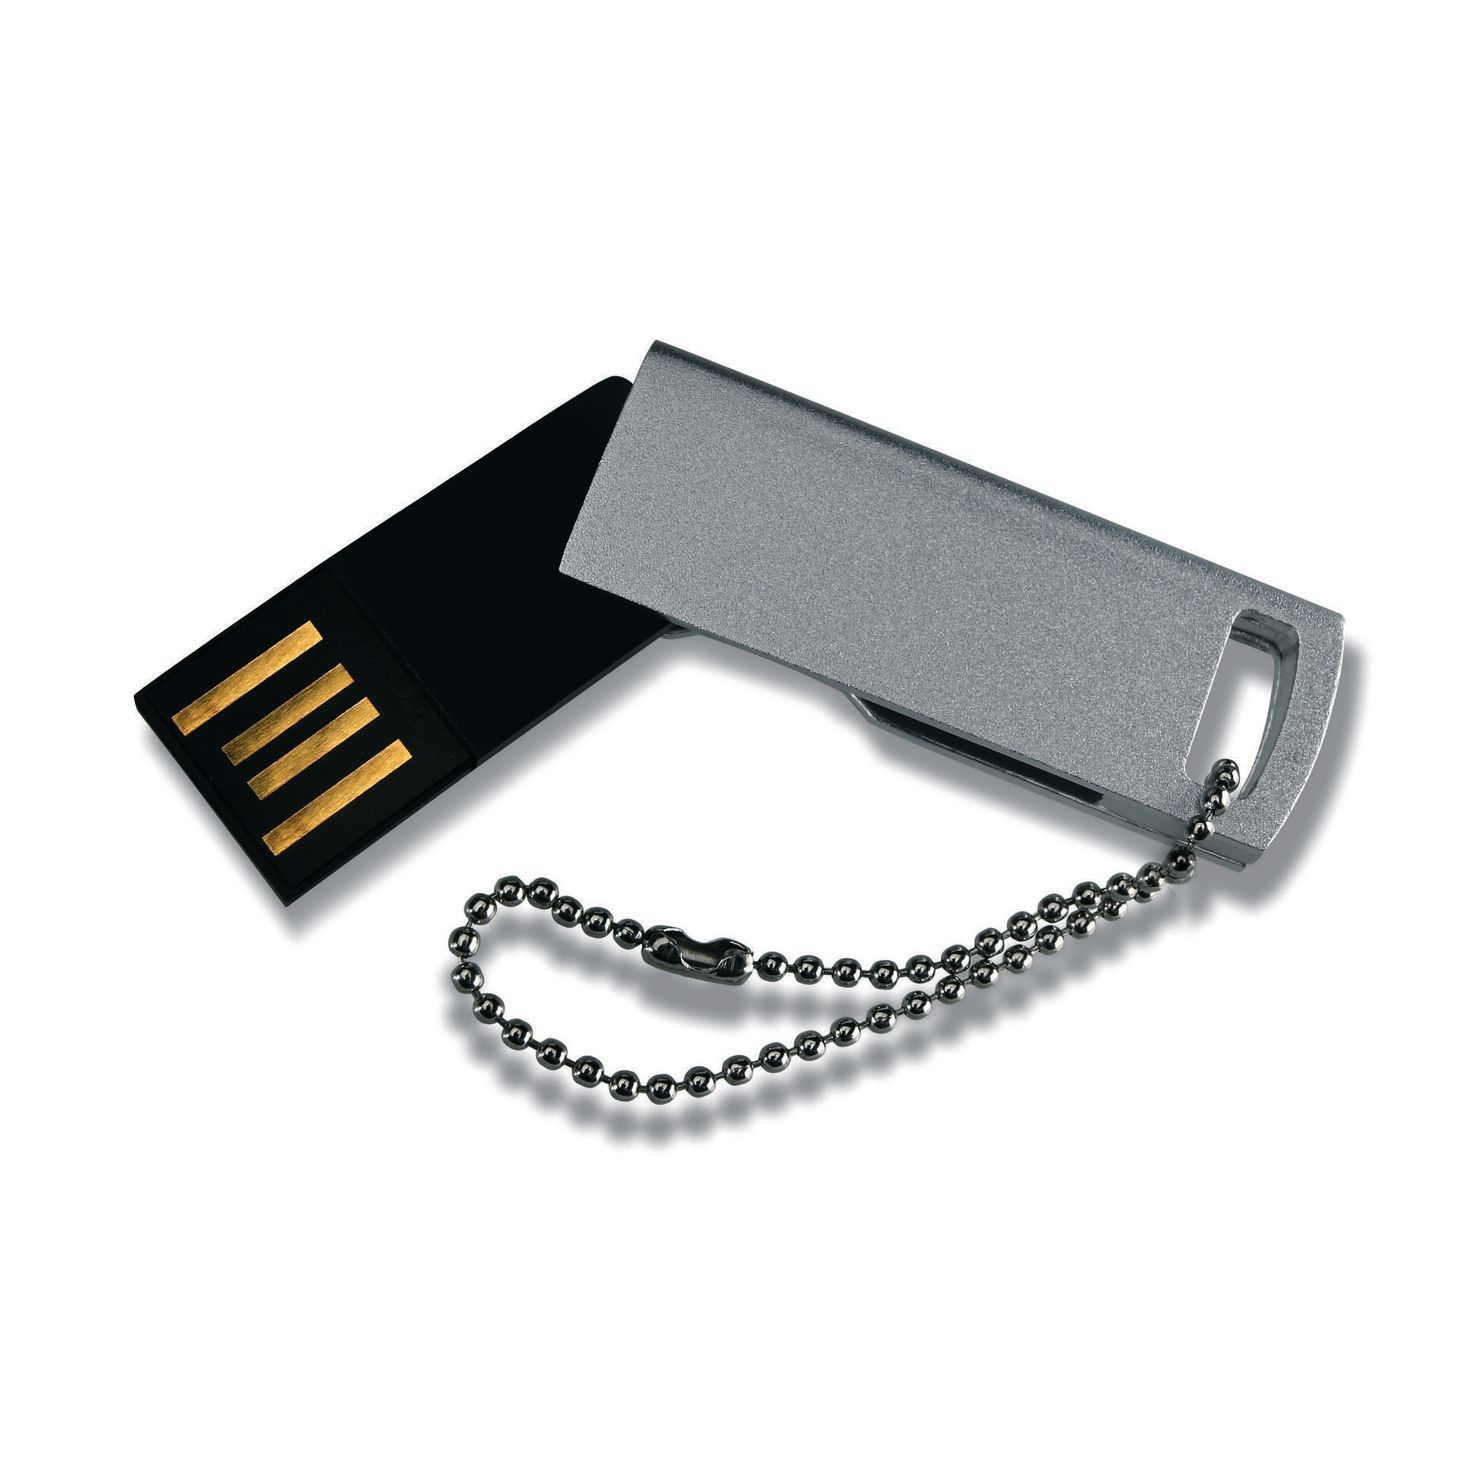 Zilvere USB mini 32GB